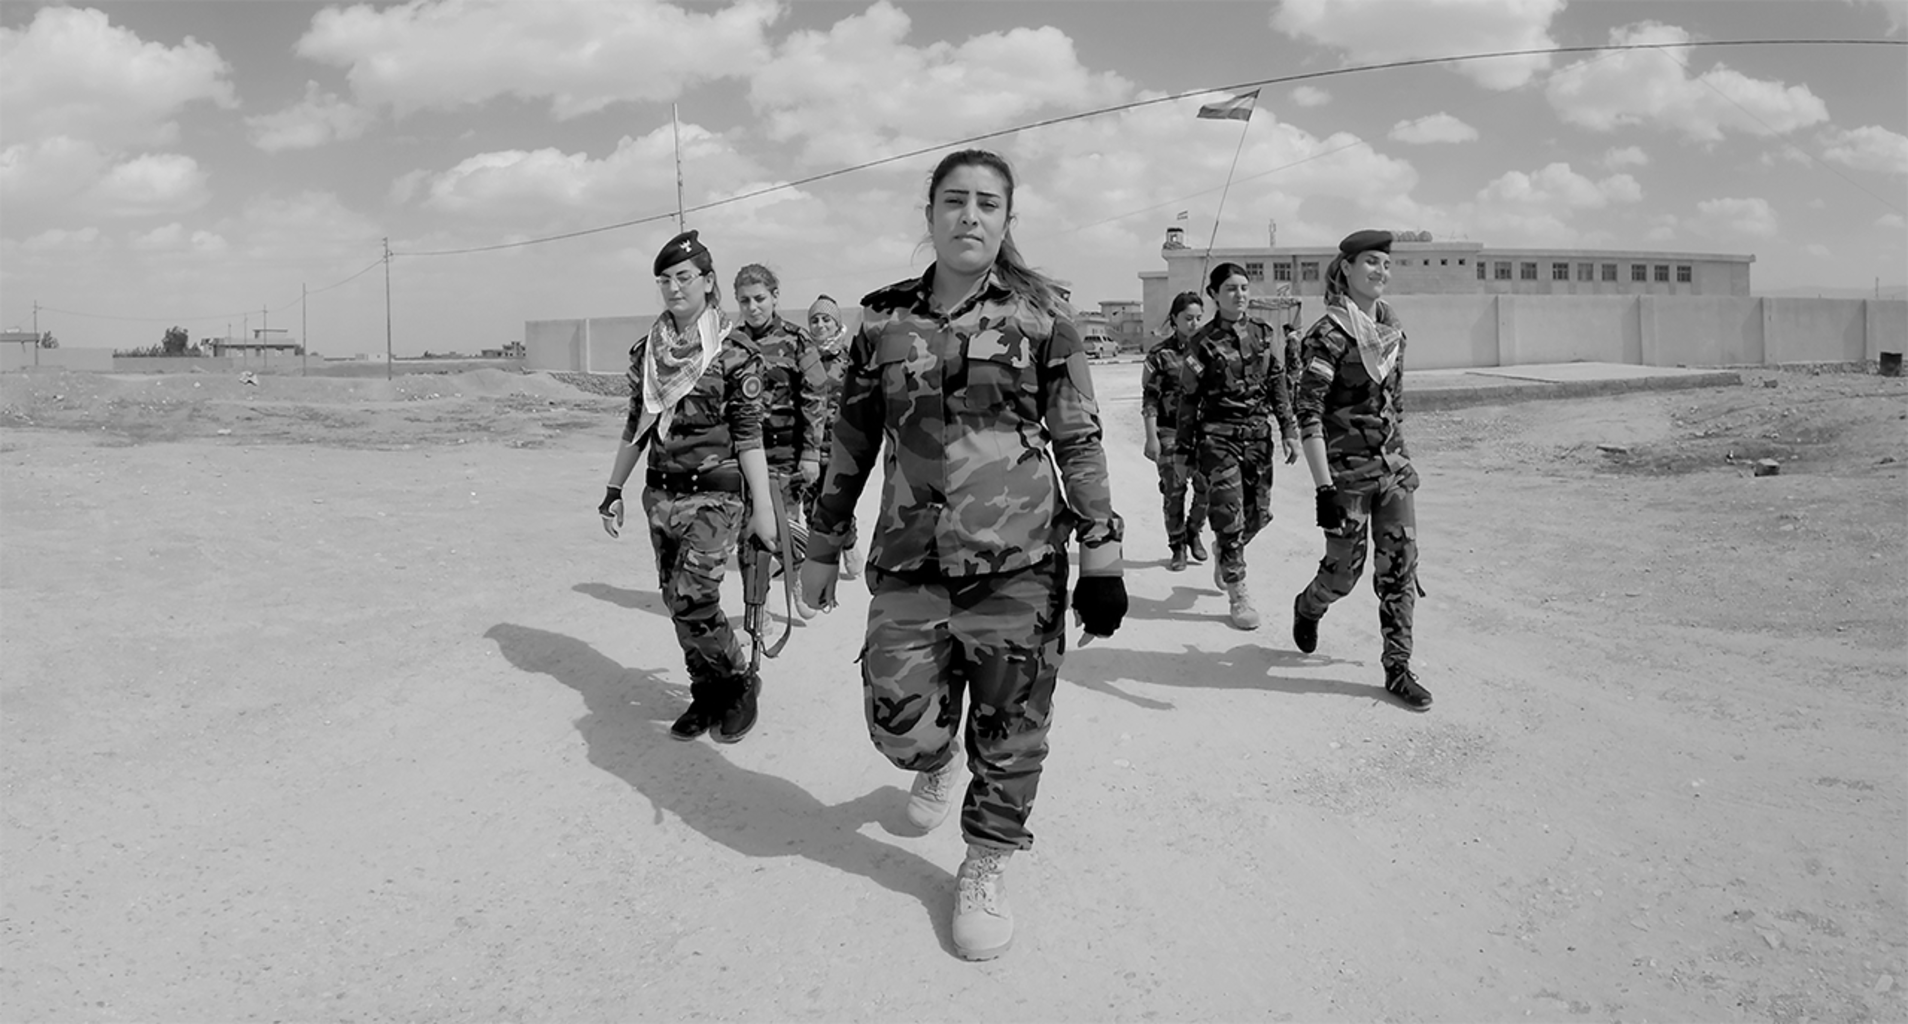 VR Film Highlights Female Empowerment in War